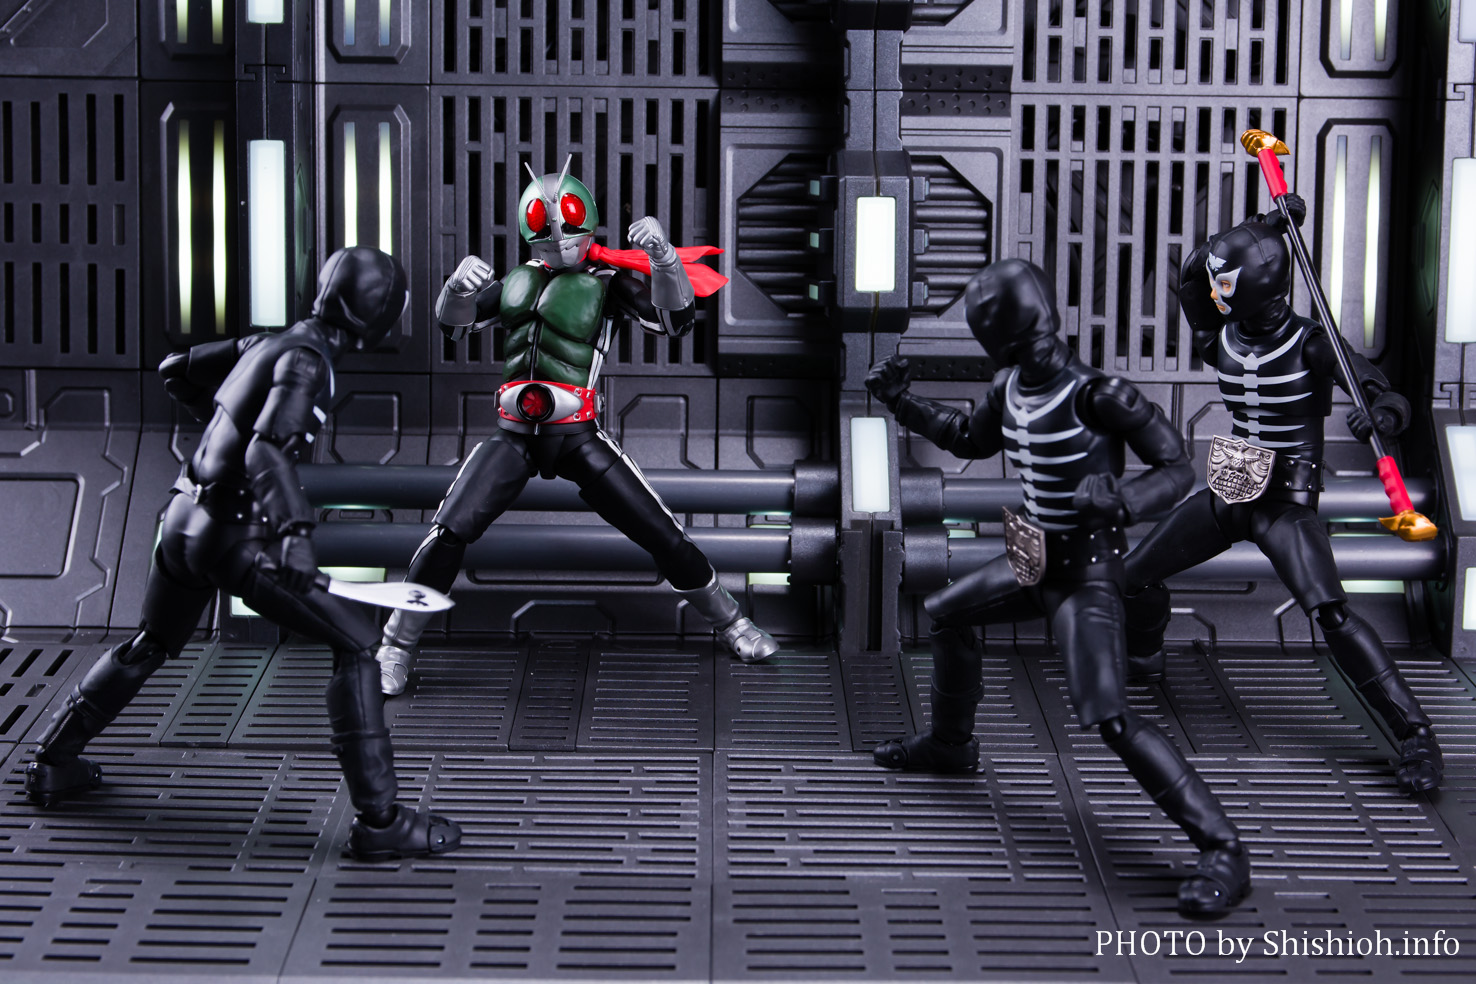 S.H.Figuarts ショッカー戦闘員(骨)